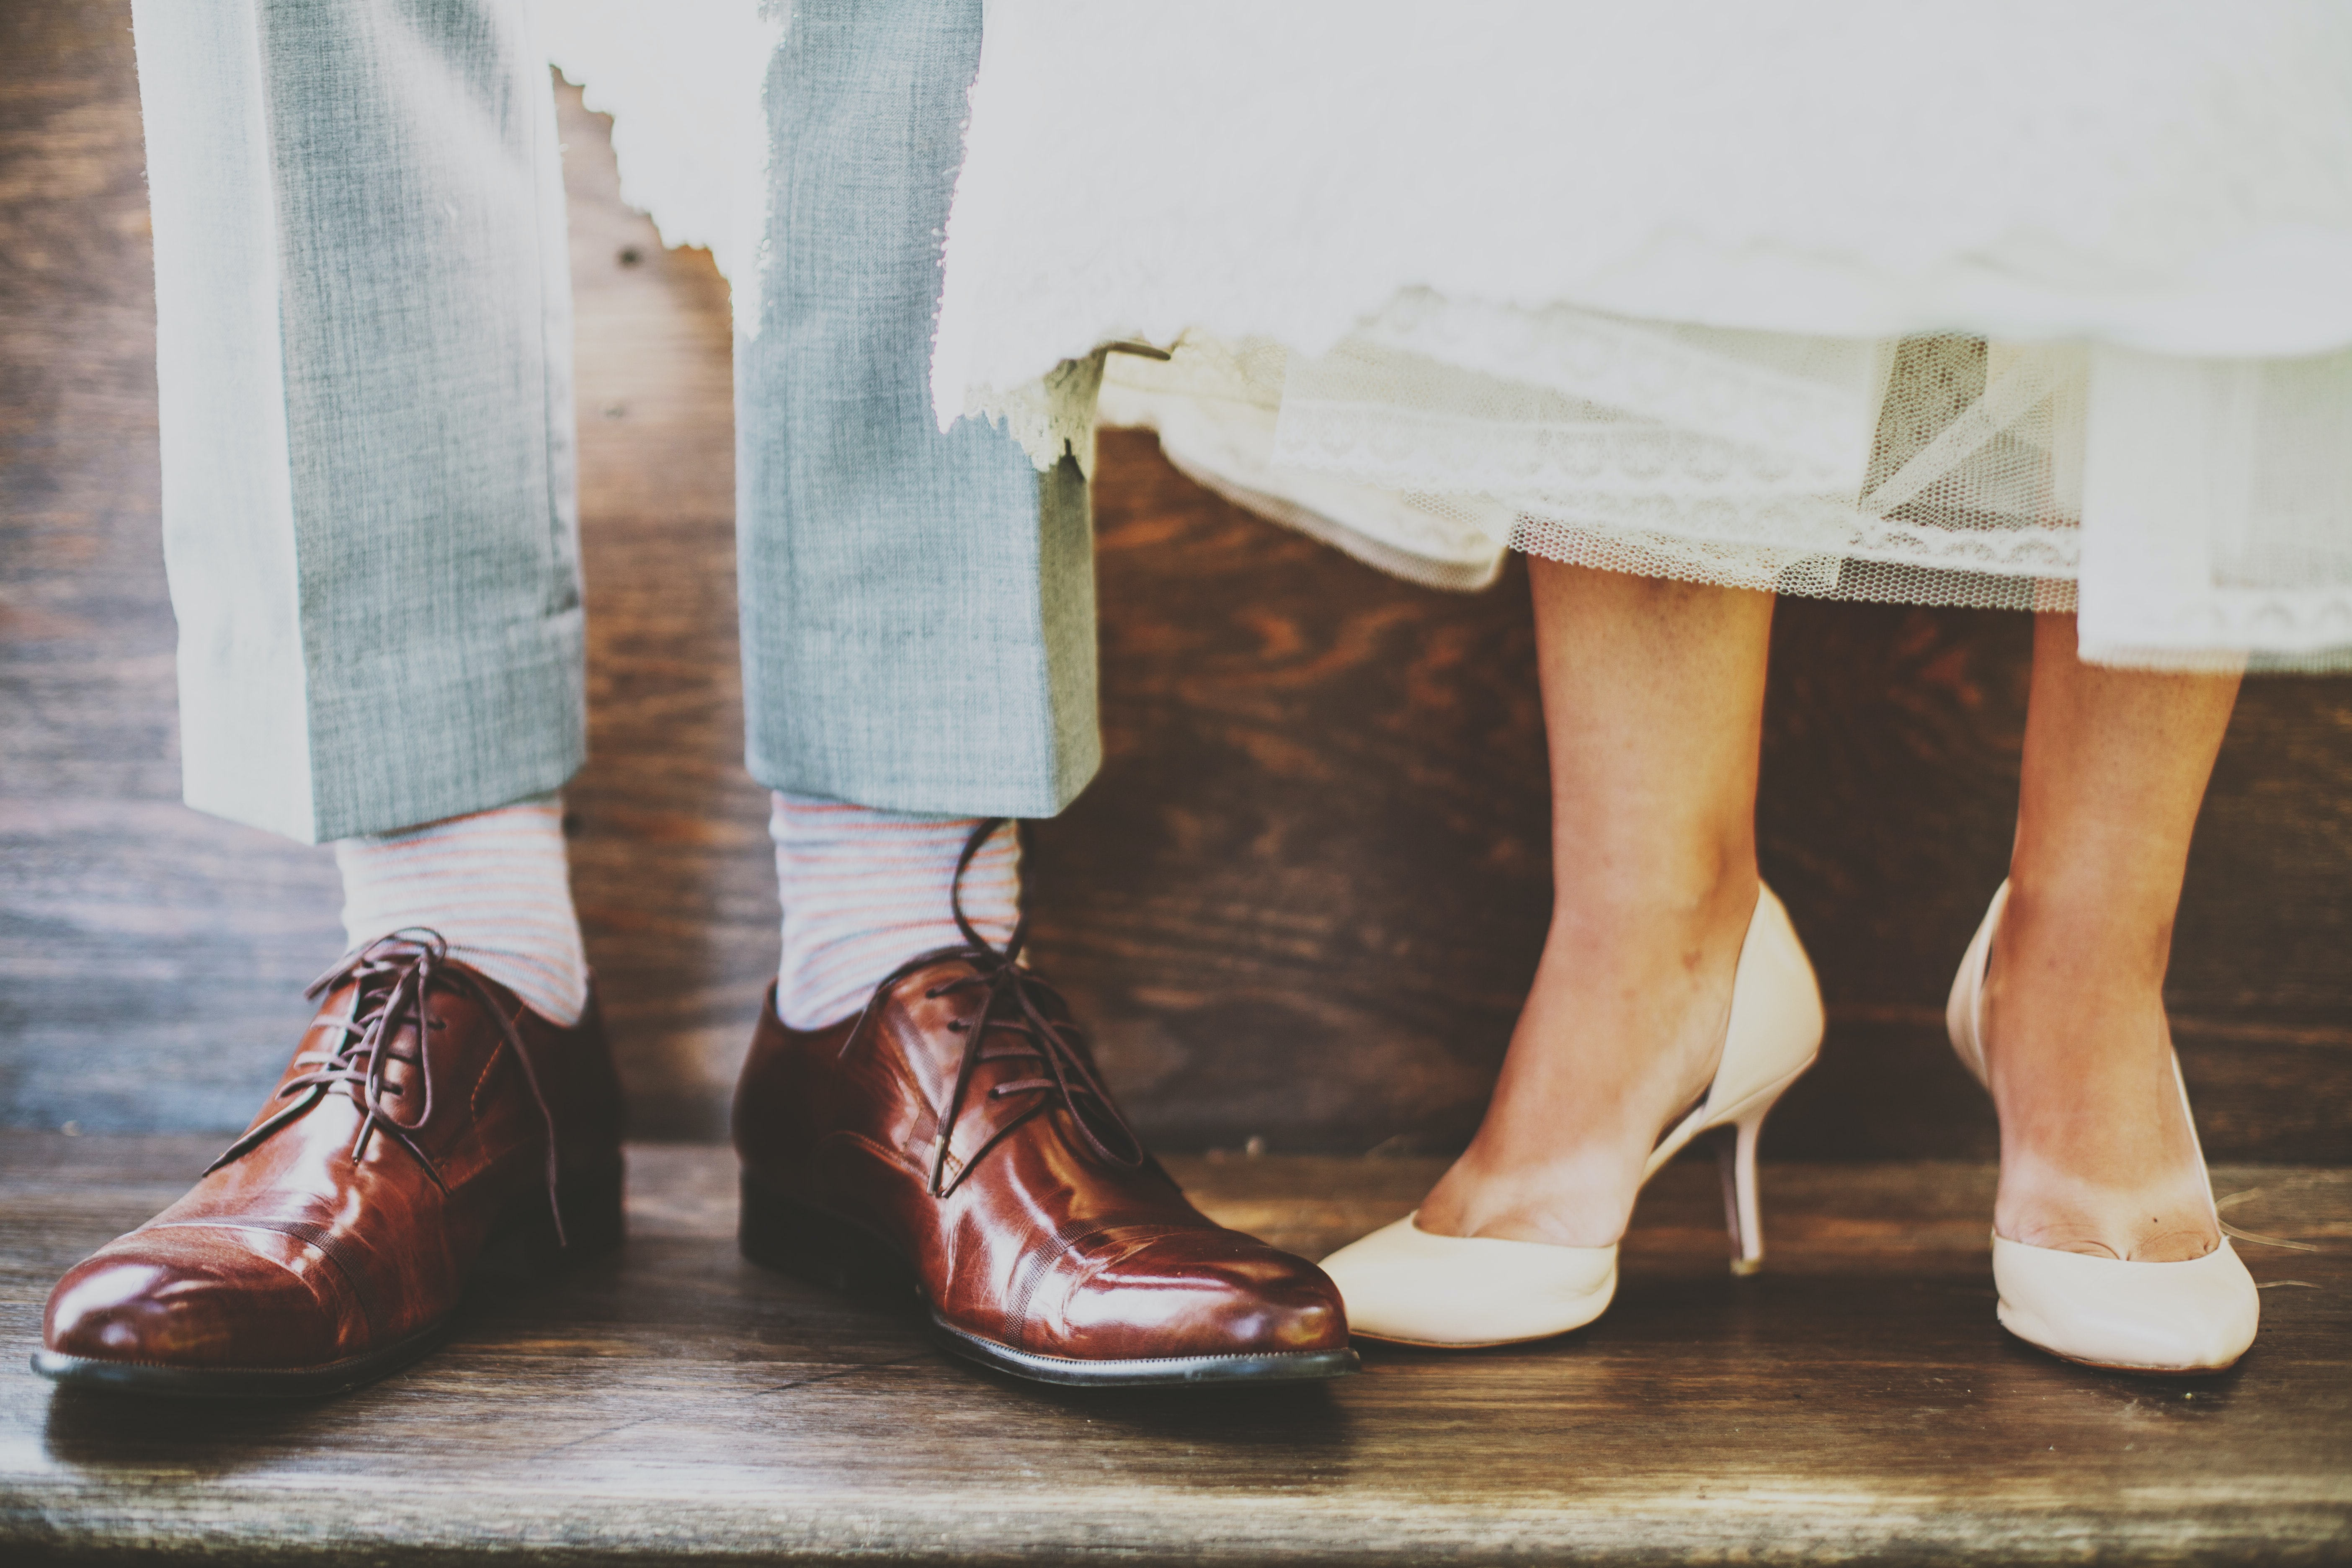 man and woman standing on wooden platform